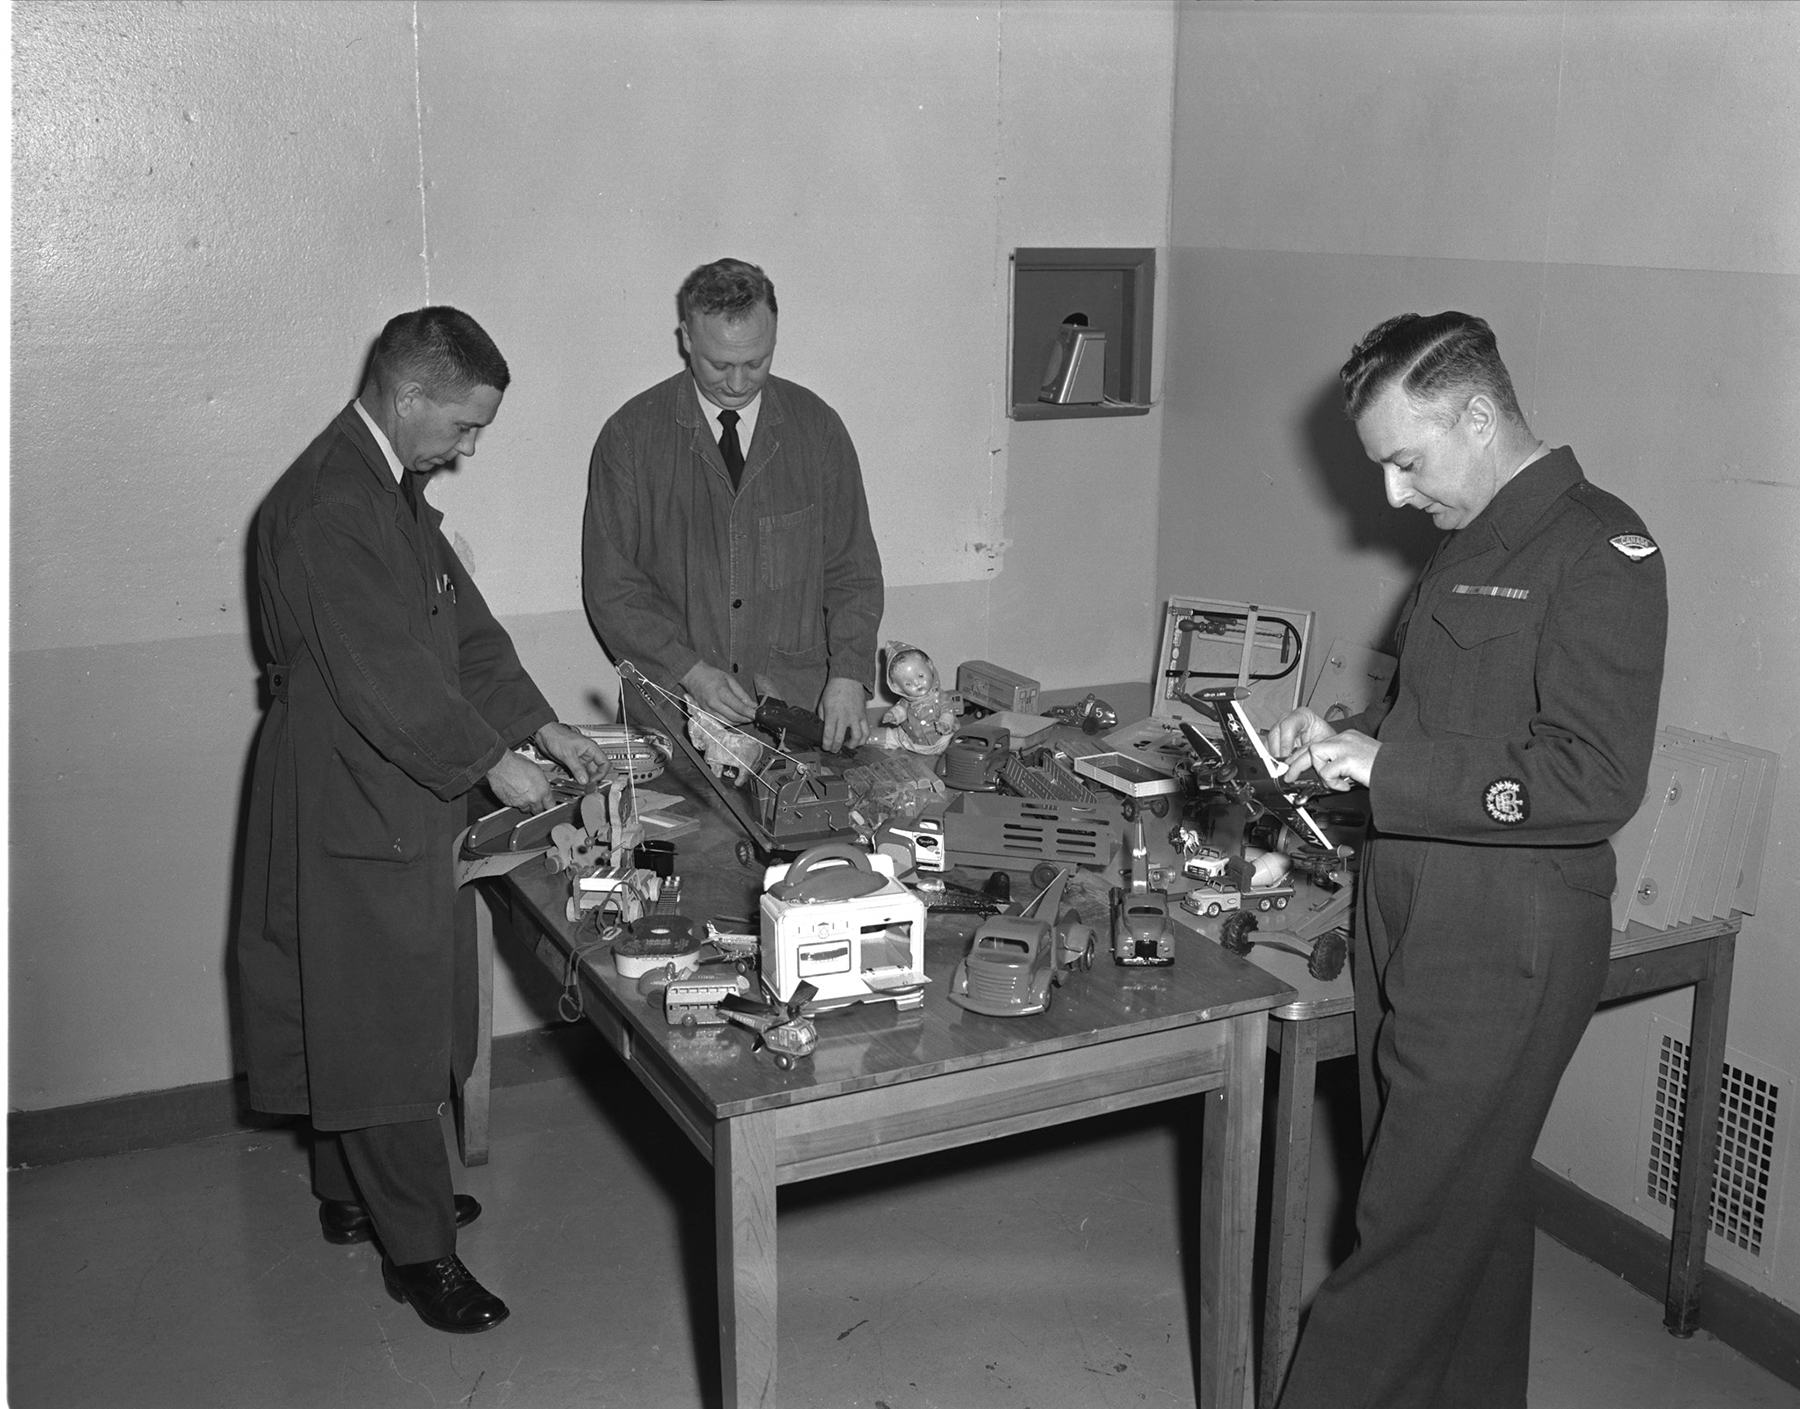 Warrant Officer H.F. Gerow (right) inspects some of the toys that personnel of the Safety Equipment School at RCAF Station Aylmer, Ontario, including Corporal Len Graham and Corporal Jack Parkhill, have been making or repairing during their spare time. The toys will be distributed to children of the Protestant Orphans' Home in London, Ontario, as Christmas presents. PHOTO: DND Archives, PL-94298